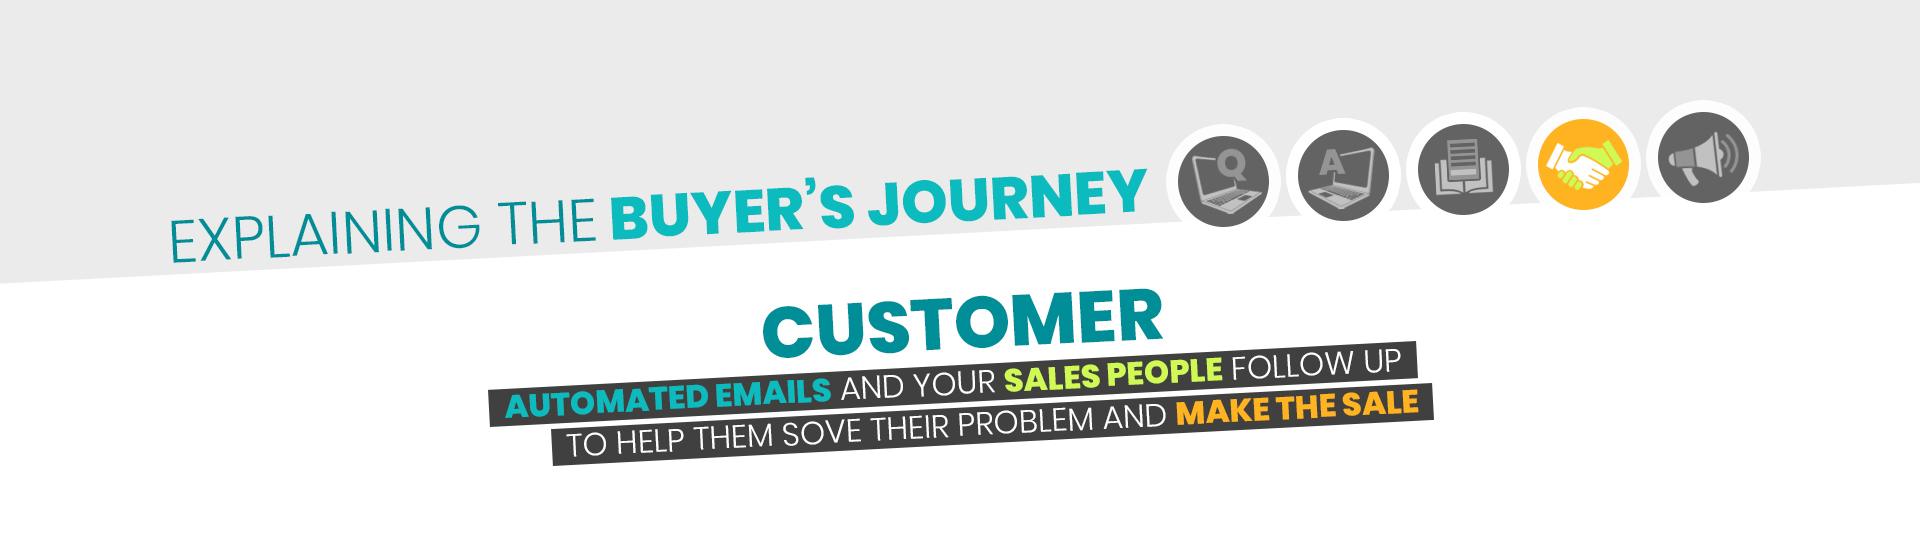 Buyers Journey - Customer-1